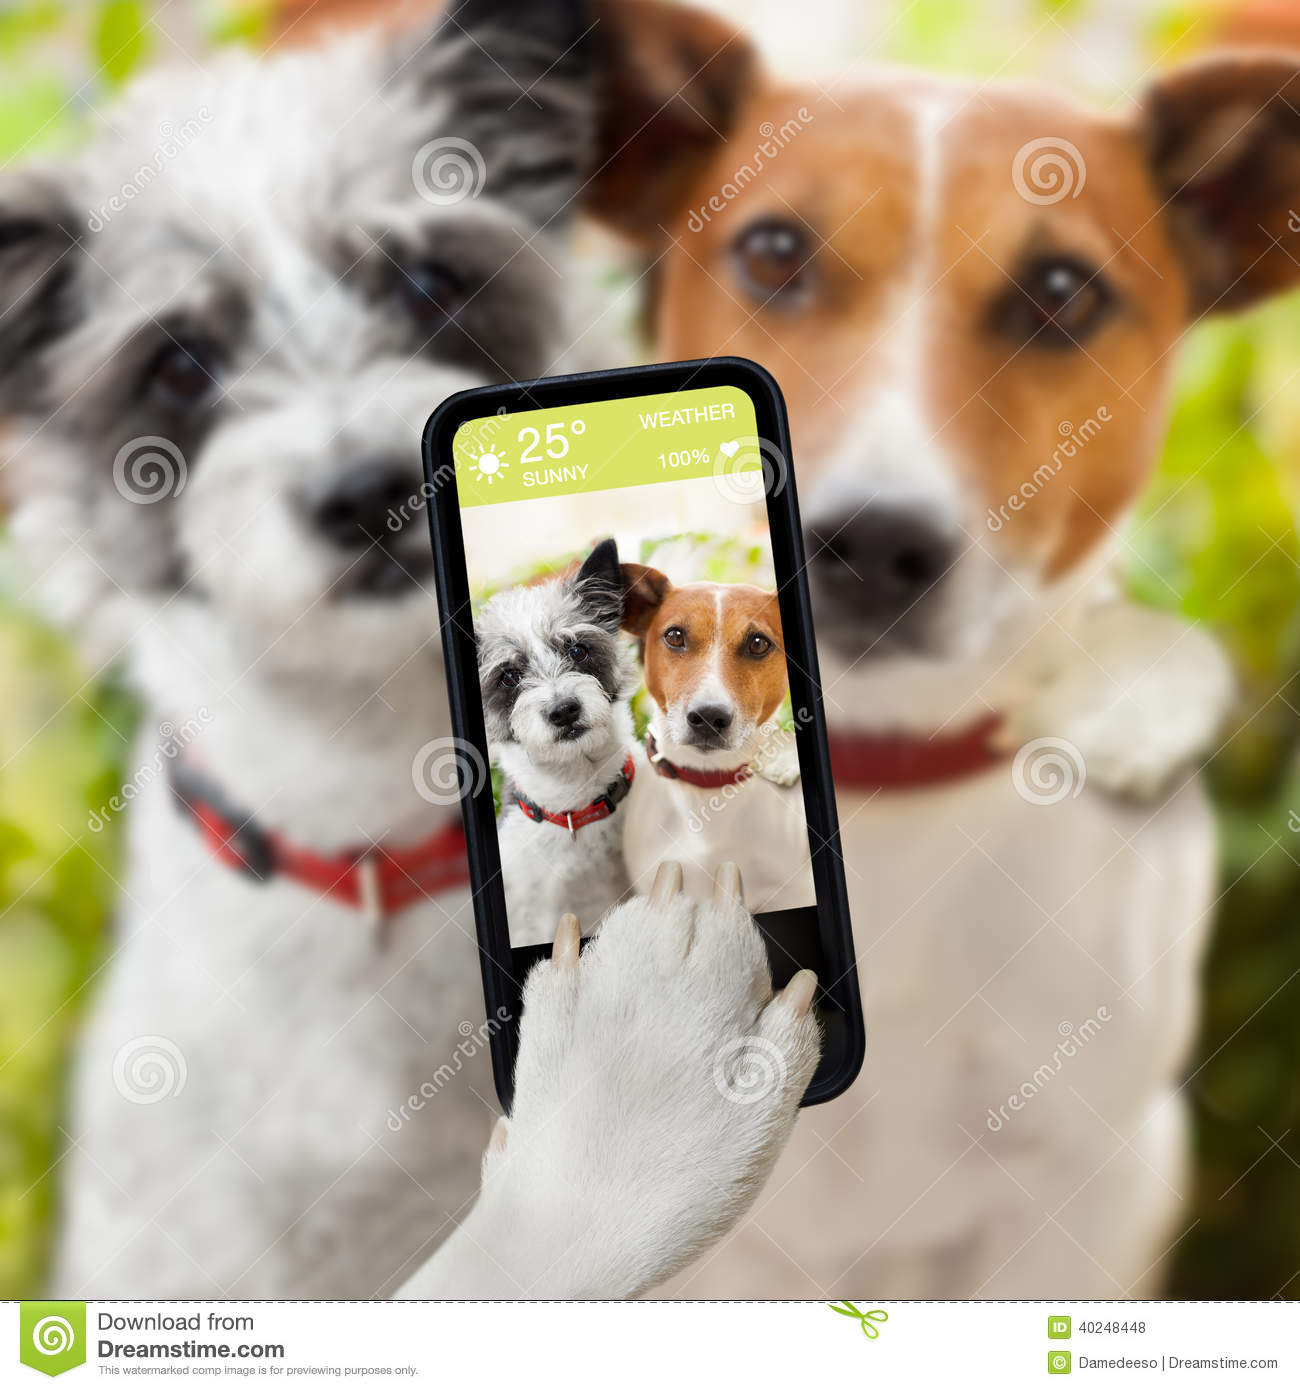 Couple of dog taking a selfie together with a smartphone. Smiling Dog And Cat